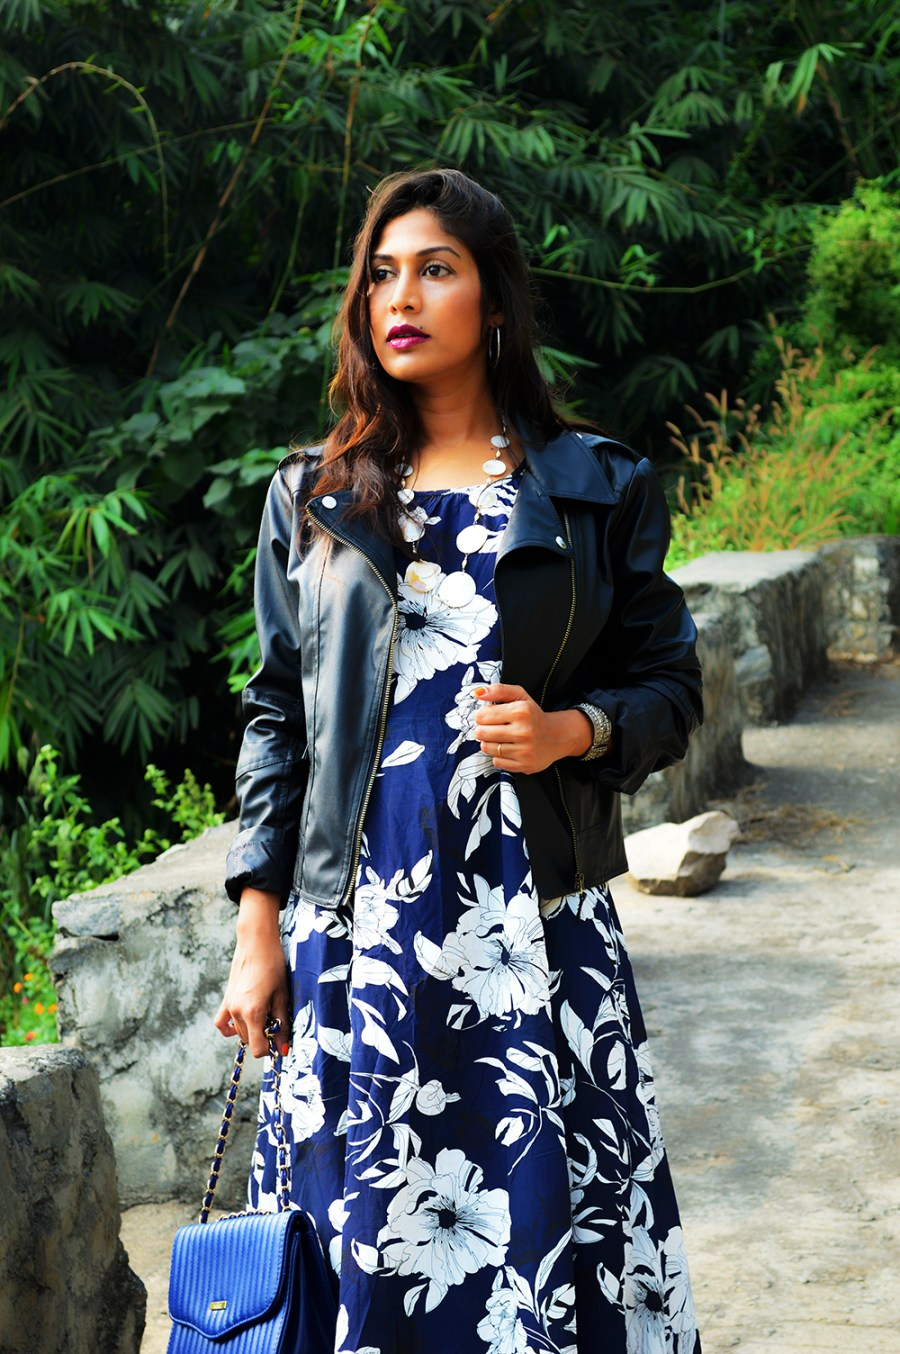 Synthetic leather, Fashion, Style, Printed maxi dress, faux leather, biker jacket, Fashion Blogger, Indian blogger, Photography, OOTD-6